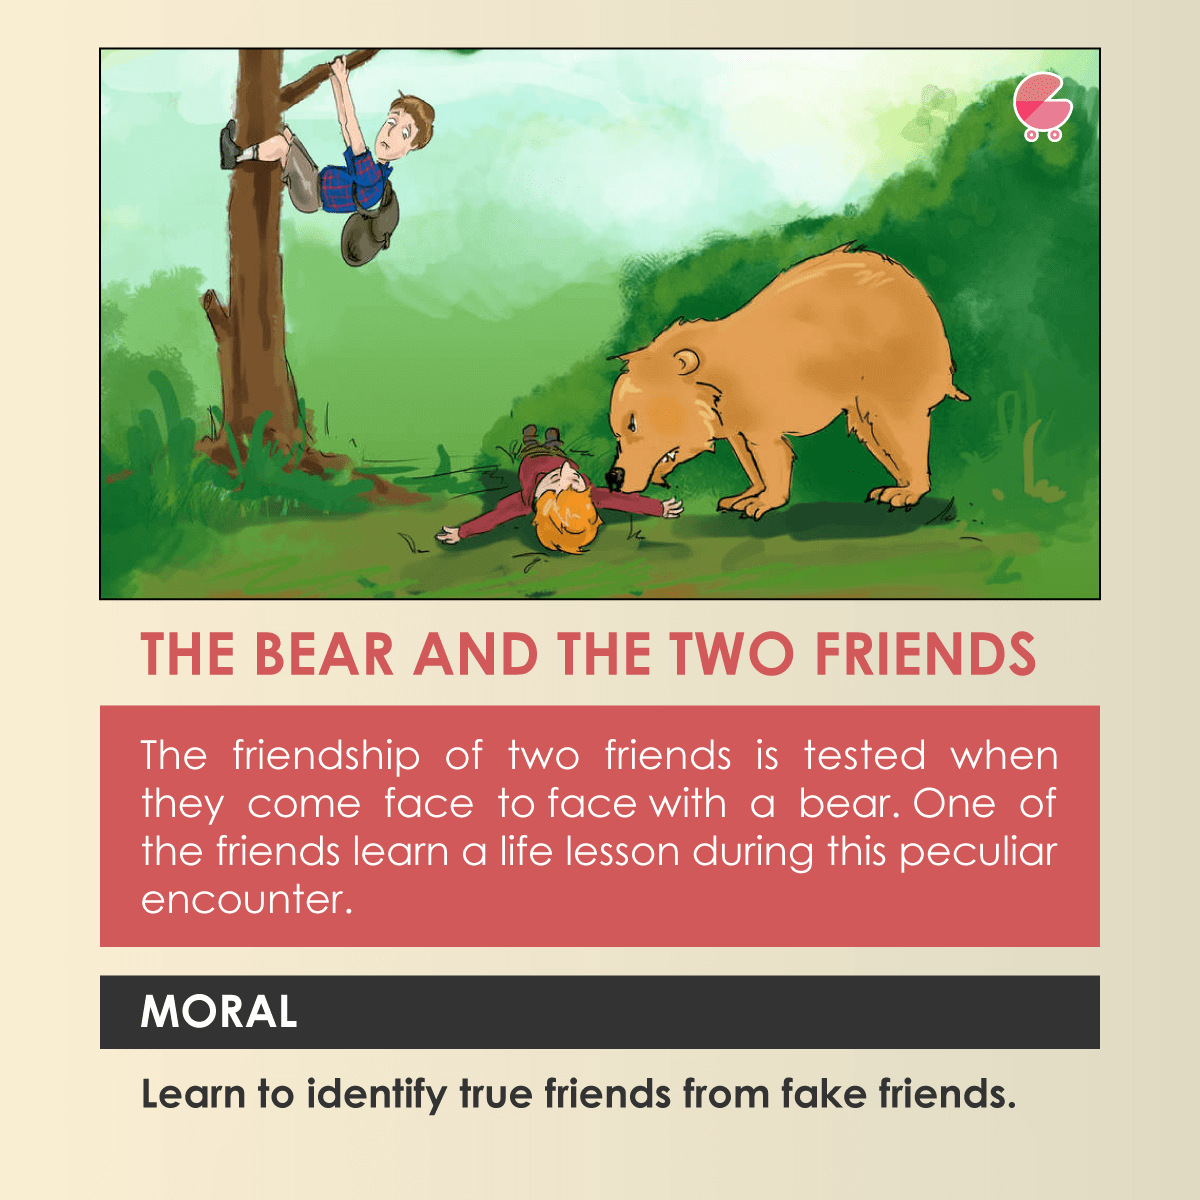 the bear and the two friends